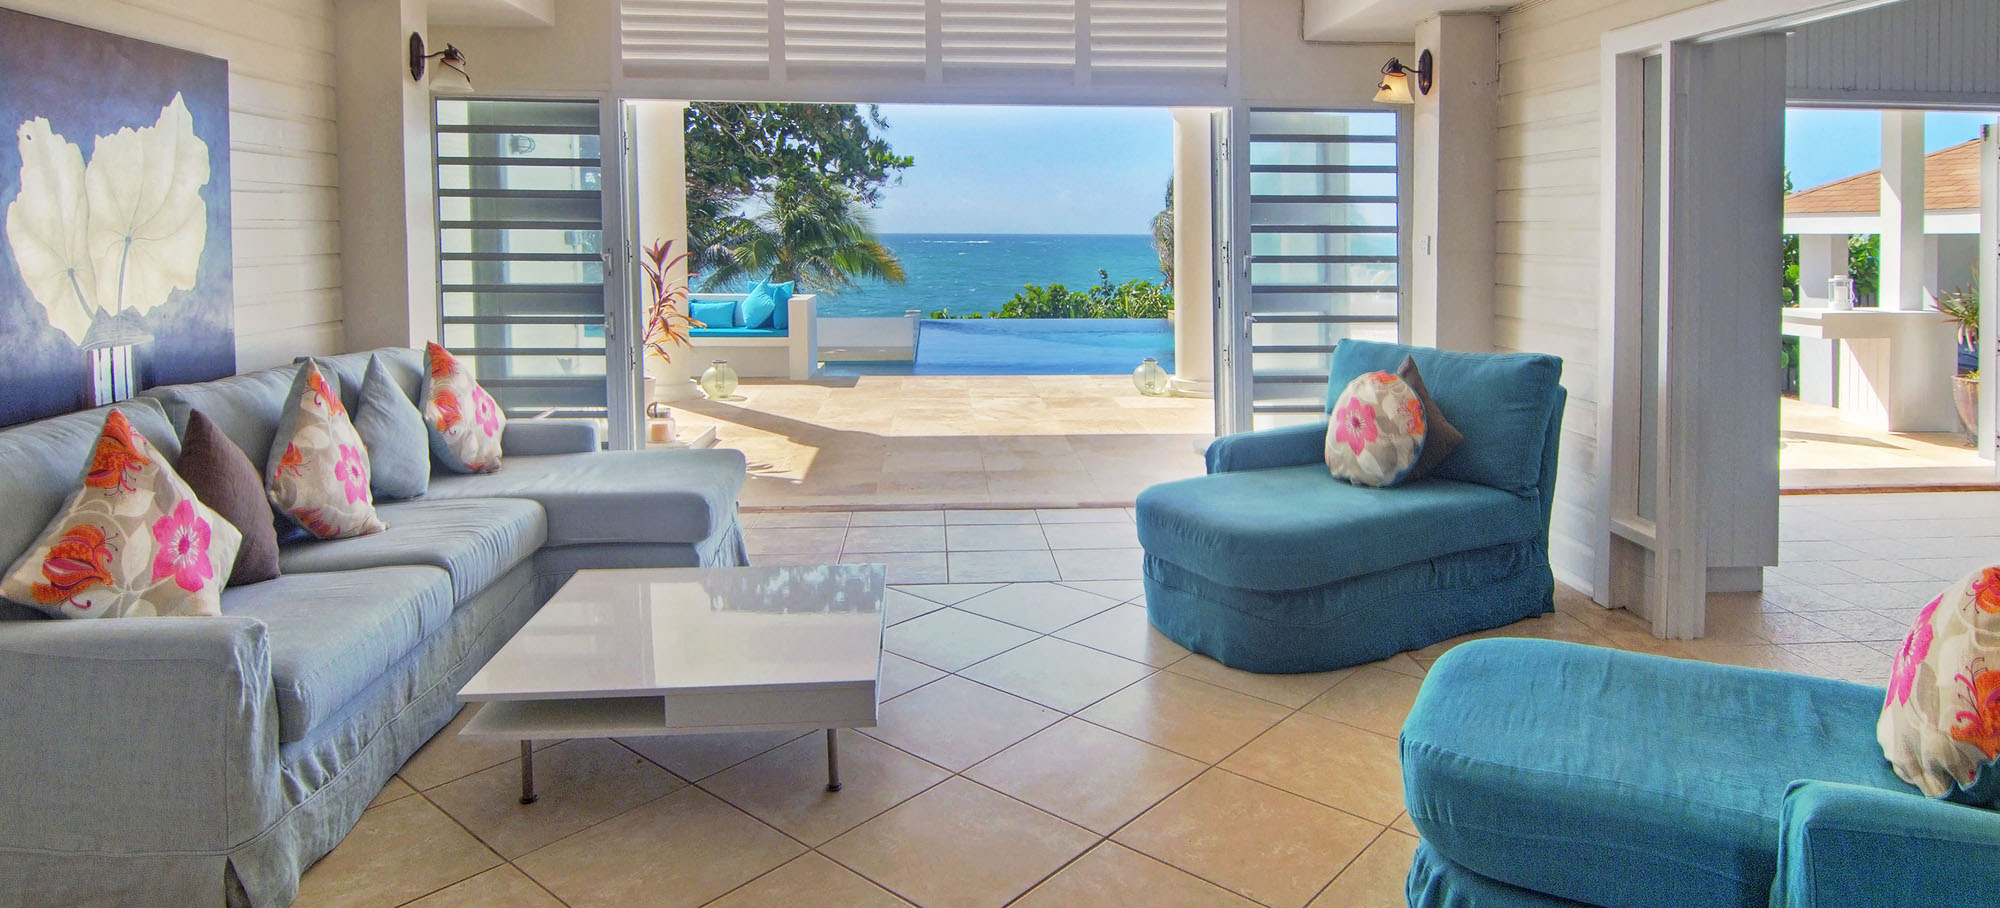 pool_beachfront_sunrise_villa_grenada_01